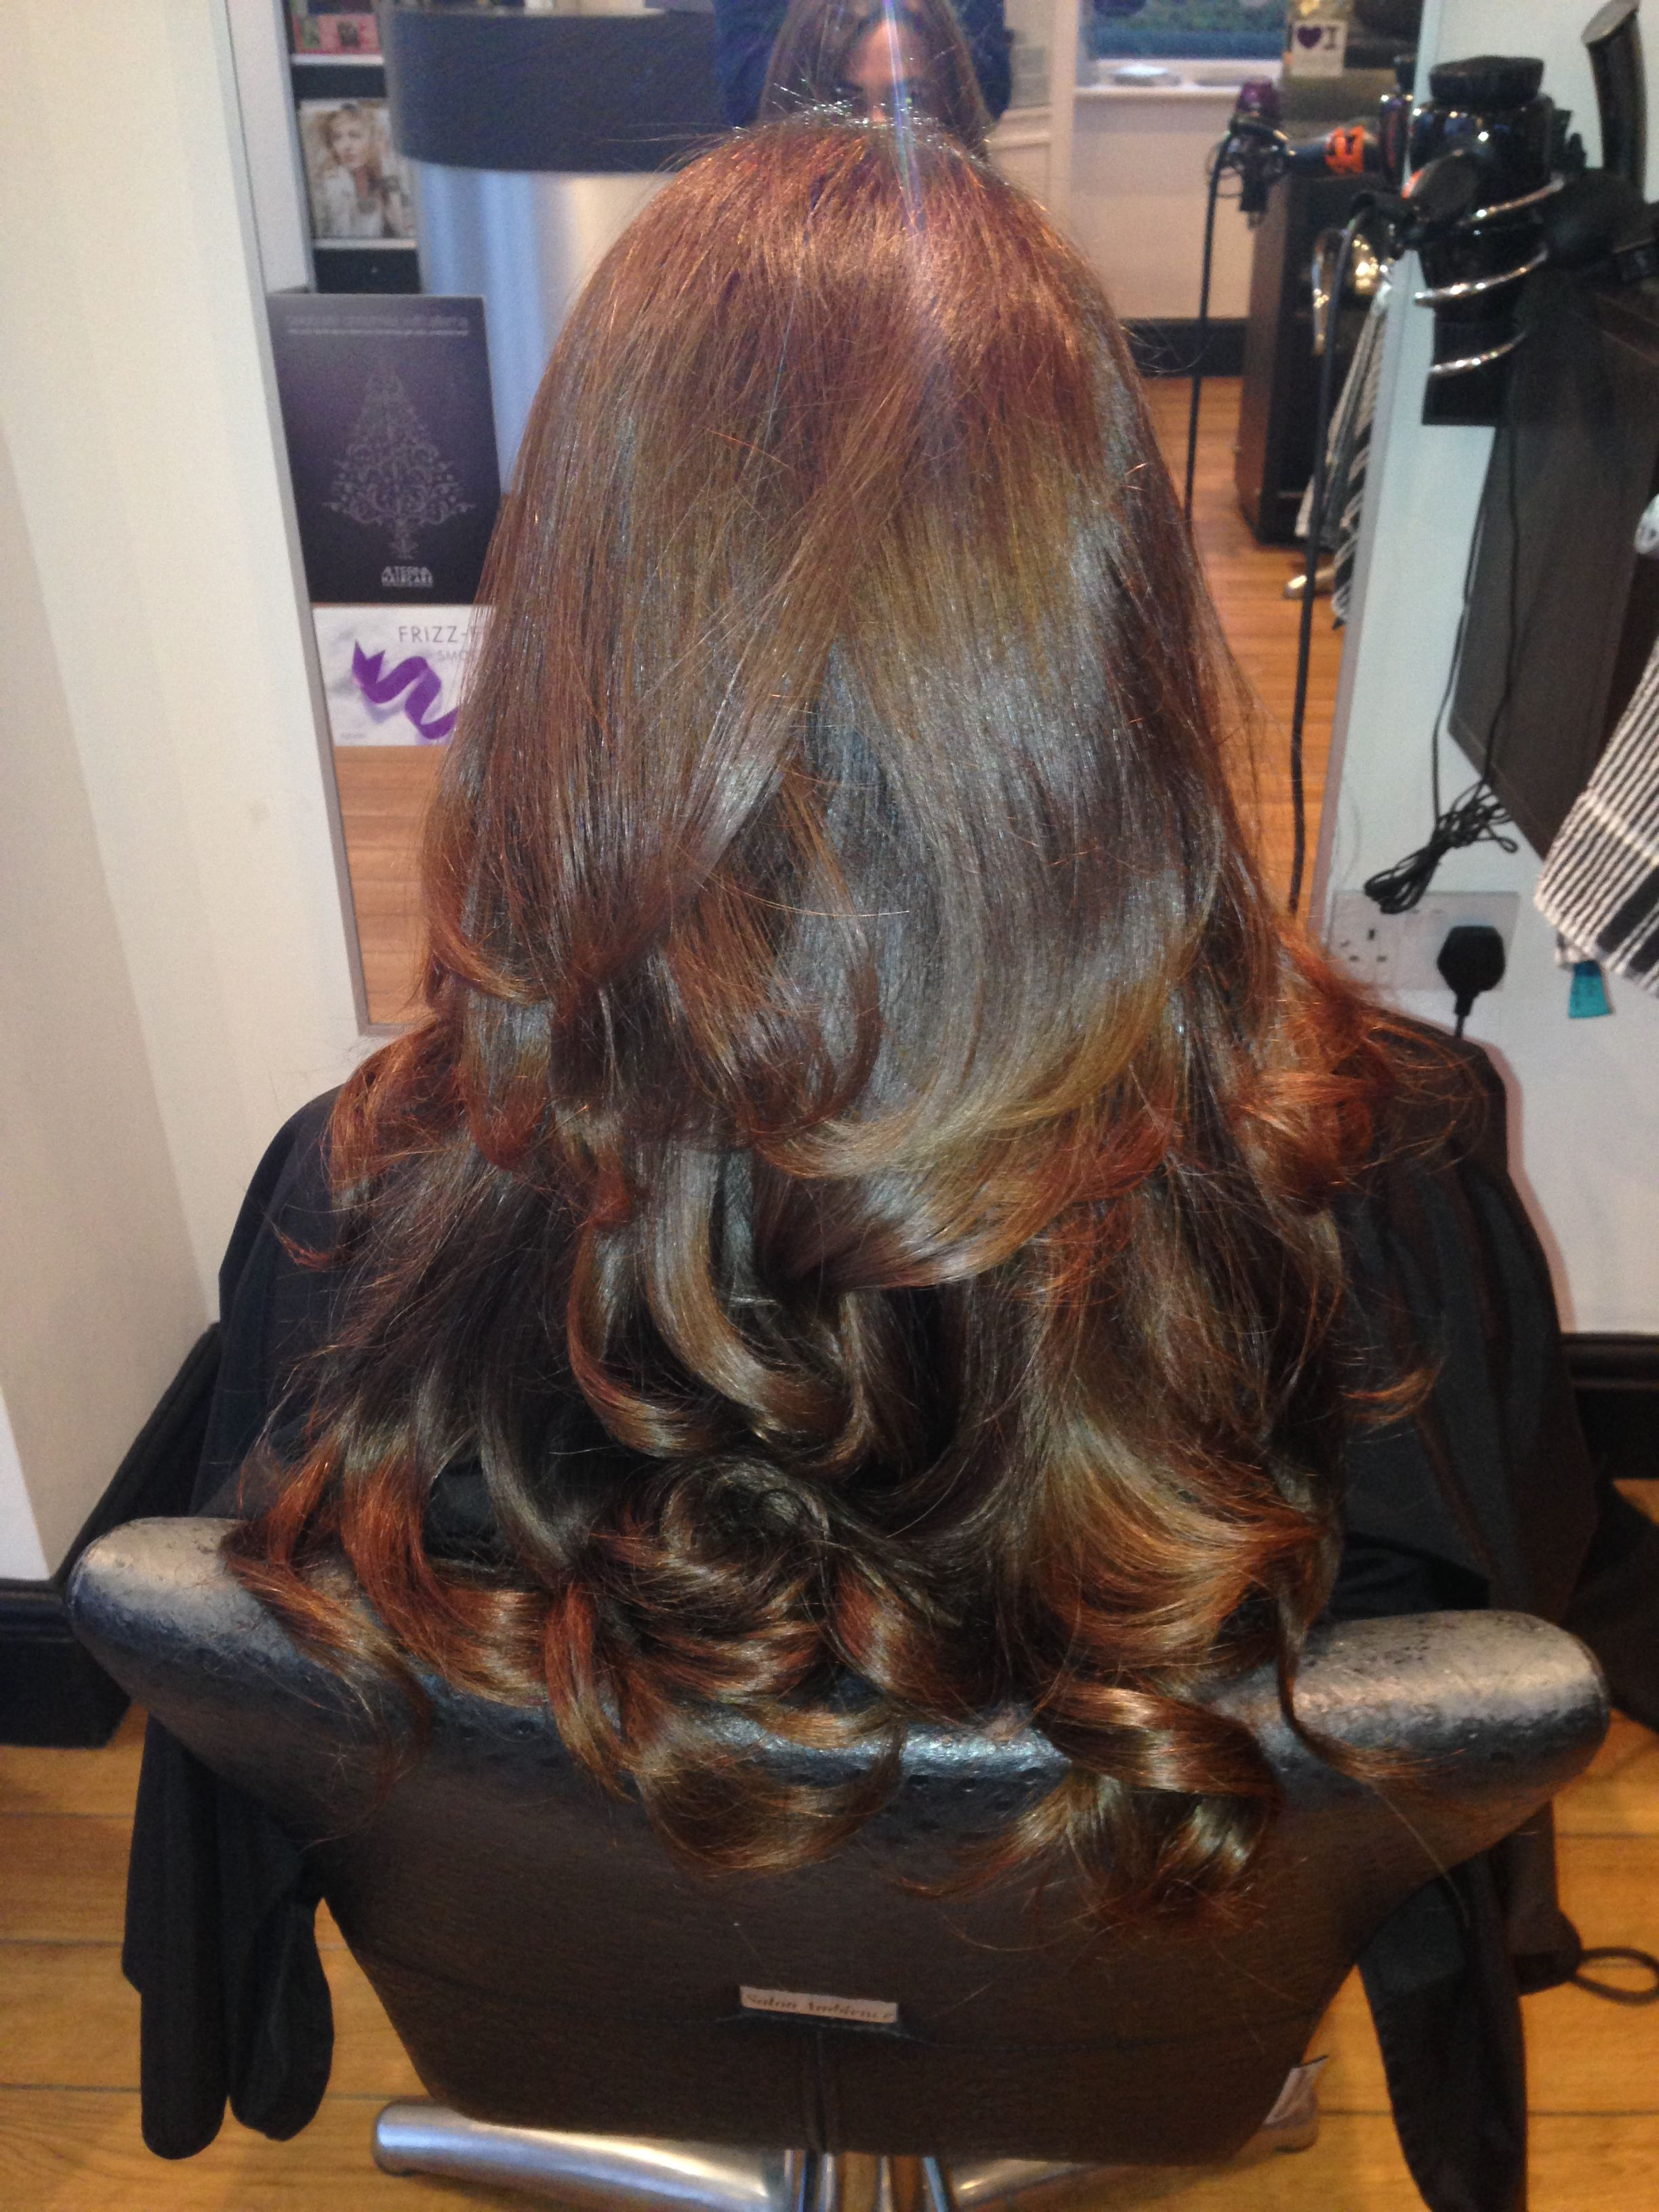 My Own Micro Ring Hair Extensions After A Bouncy Blow Dry Feeling